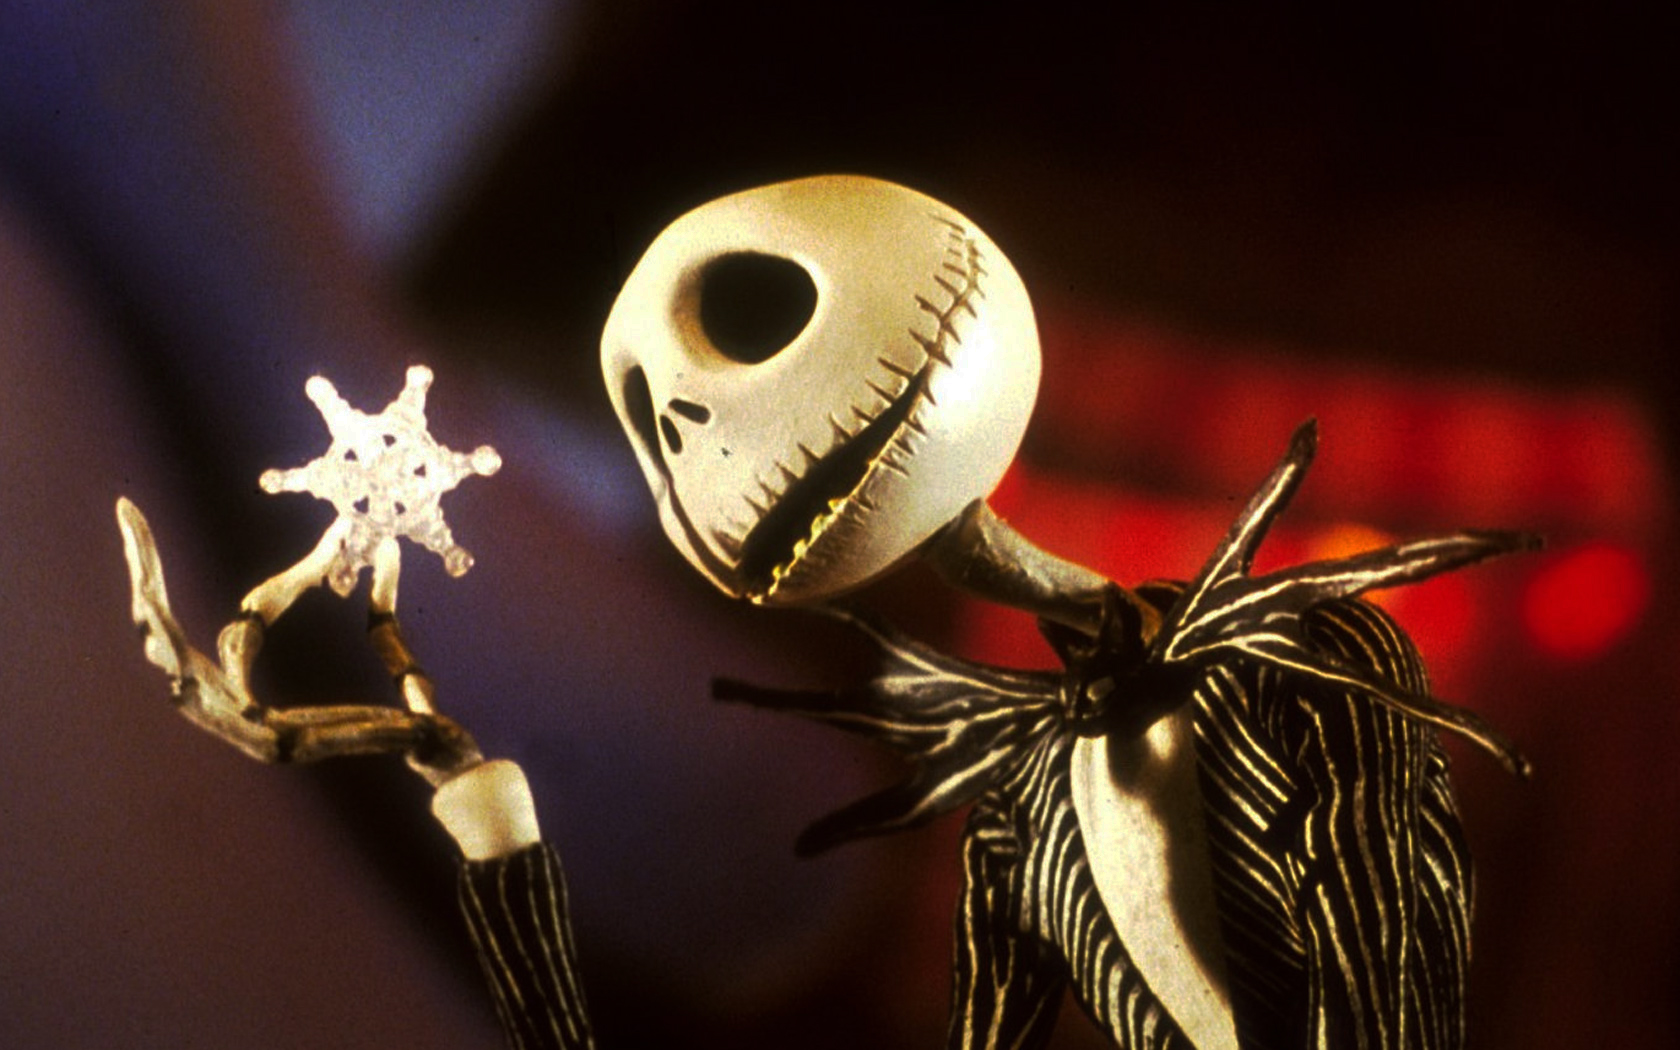 is nightmare before christmas a halloween or xmas movie - Who Directed Nightmare Before Christmas